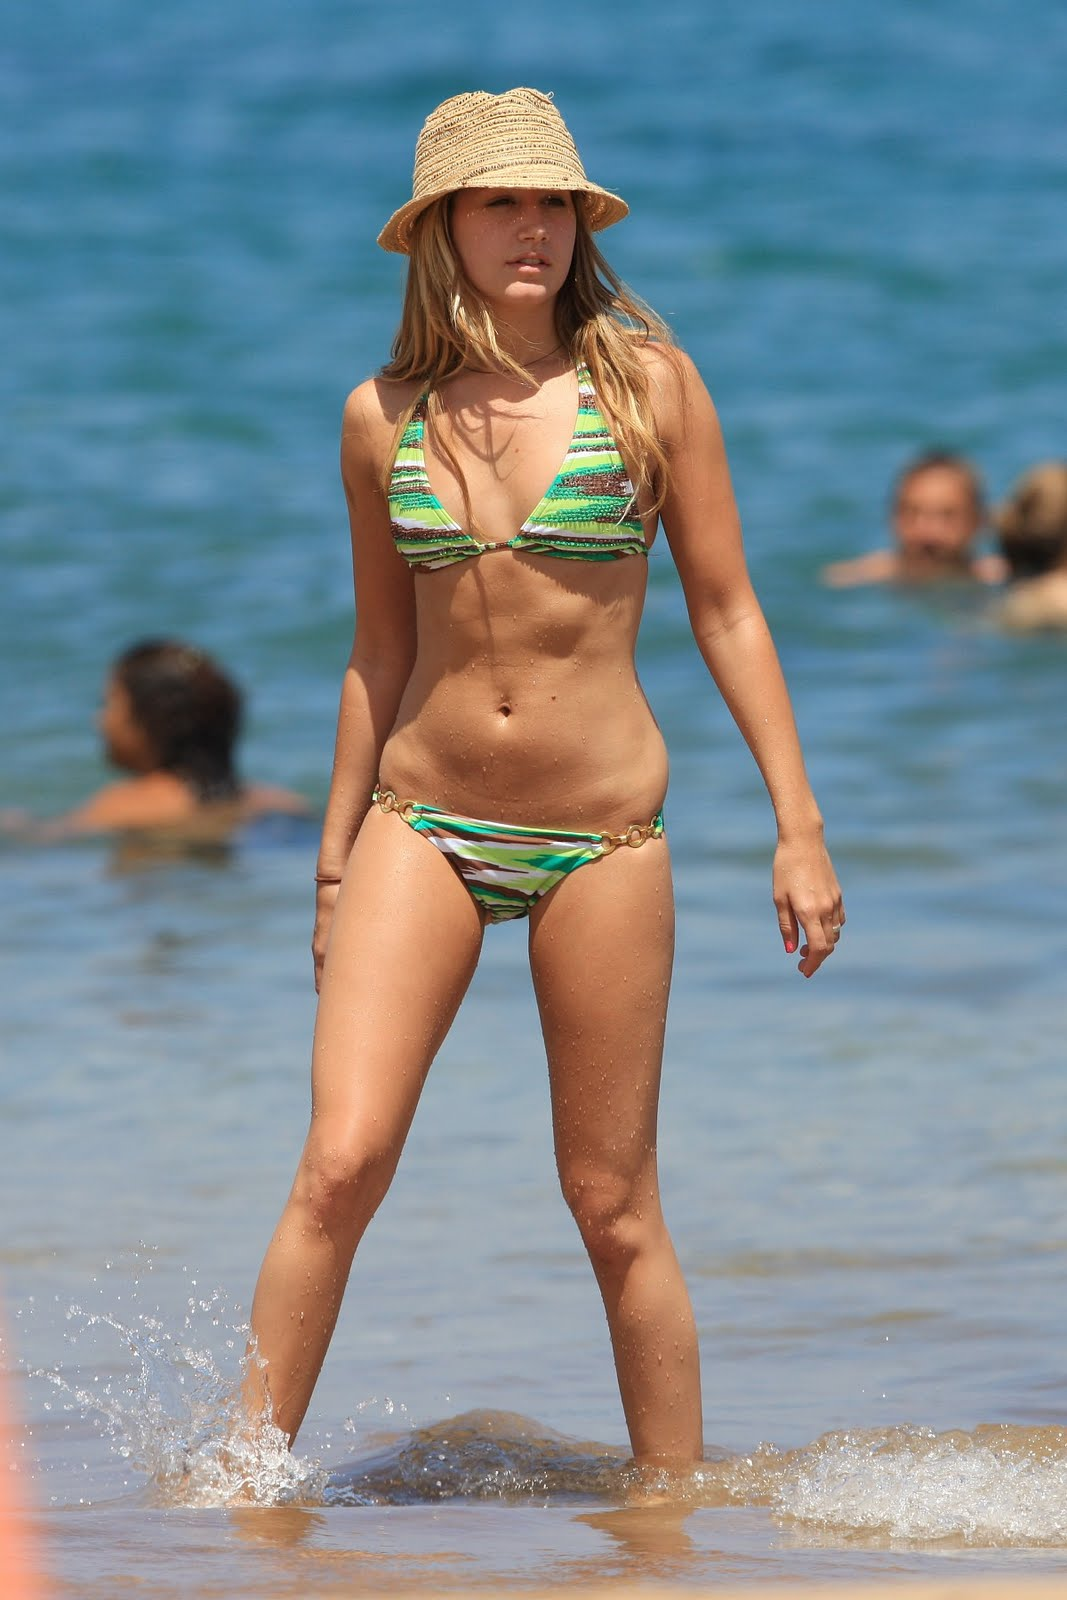 http://1.bp.blogspot.com/-wxNRkVbo0BI/Th2gC6omDaI/AAAAAAAAGP4/ZdwXtJPTAis/s1600/ashley-tisdale-bikini-02.jpg